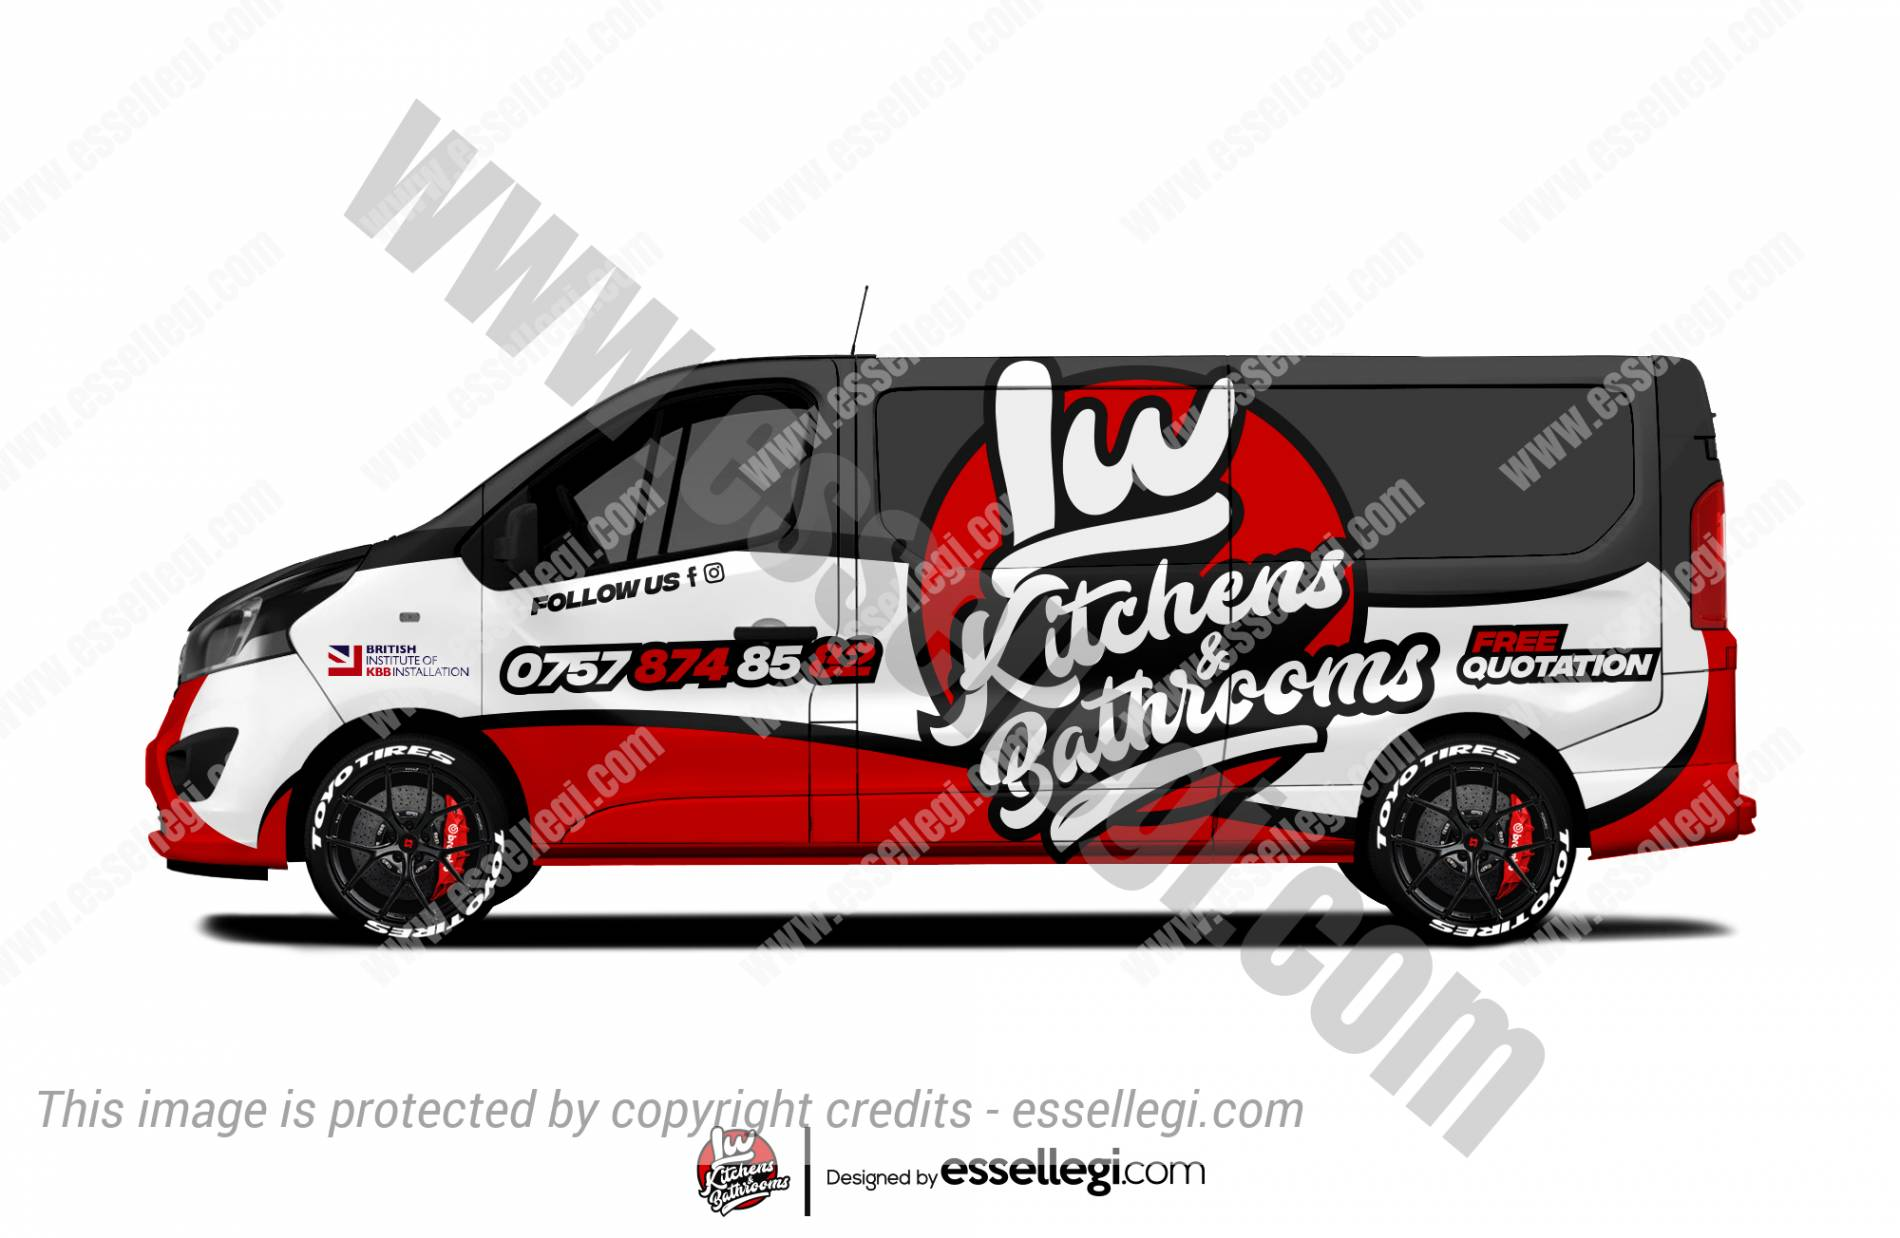 Vauxhall Vivaro Wrap Design. Vauxhall Vivaro Wrap | Van Wrap Design by Essellegi. Van Signs, Van Signage, Van Wrapping, Van Signwriting, Van Wrap Designer, Signs for Van, Van Logo, Van Graphic by Essellegi.